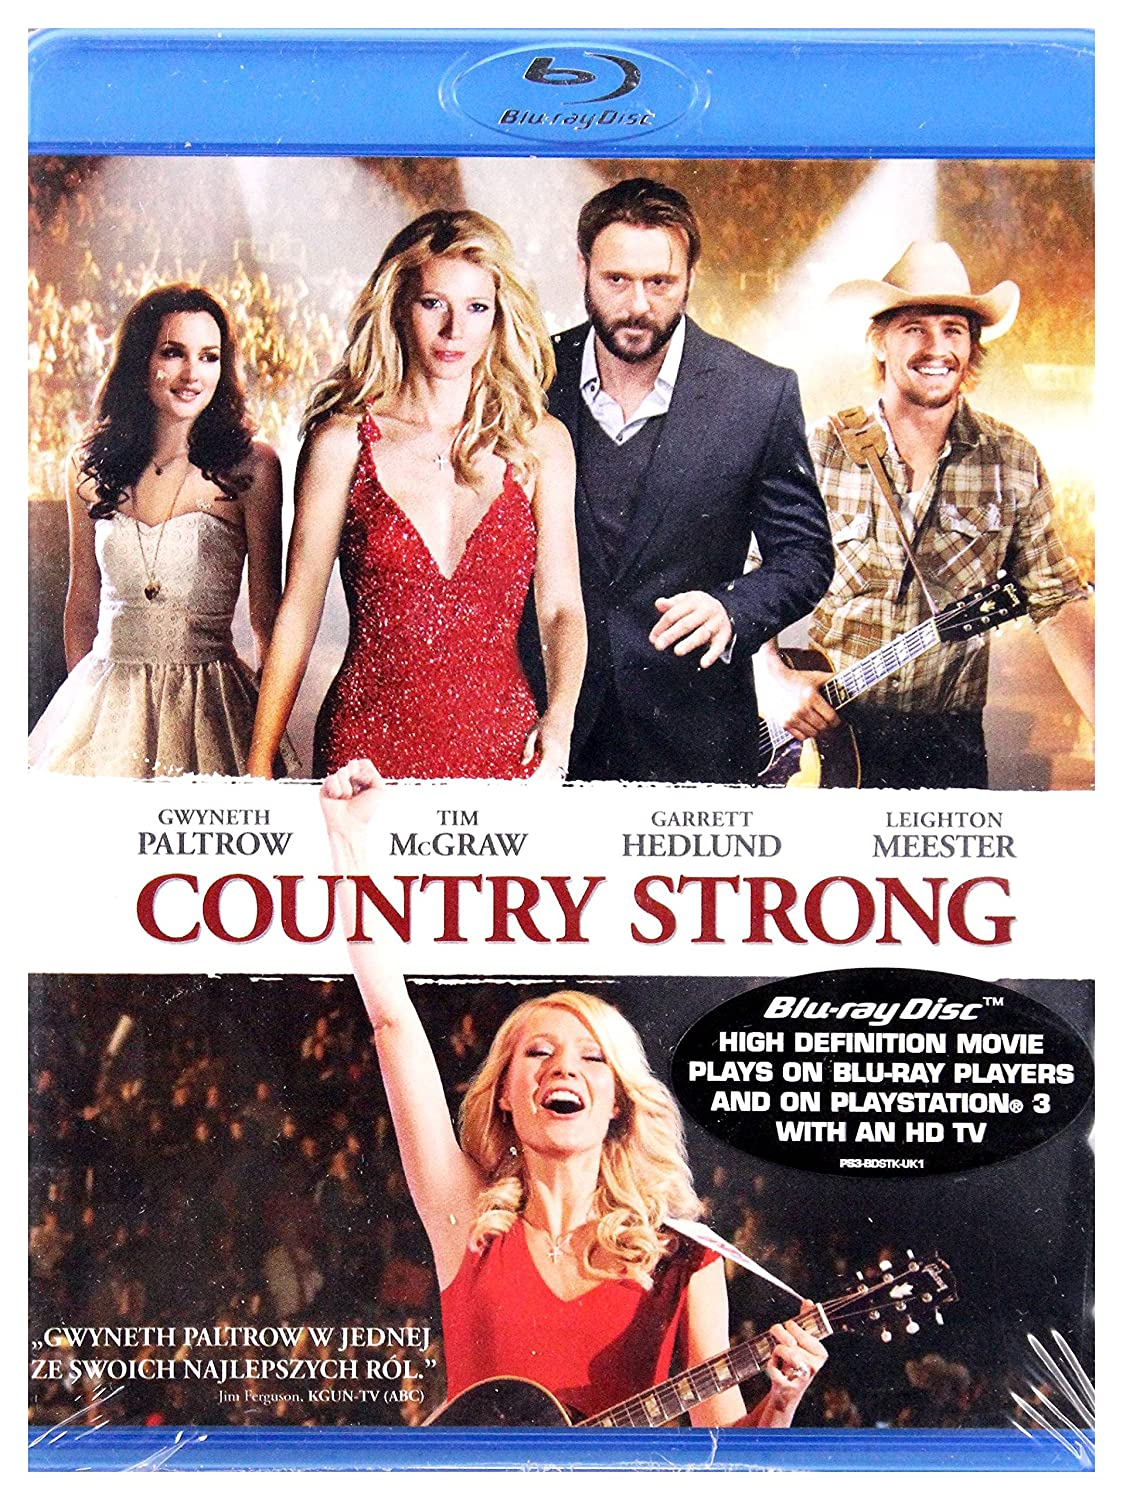 Watch Gwyneth Paltrow to release Country Strong single video